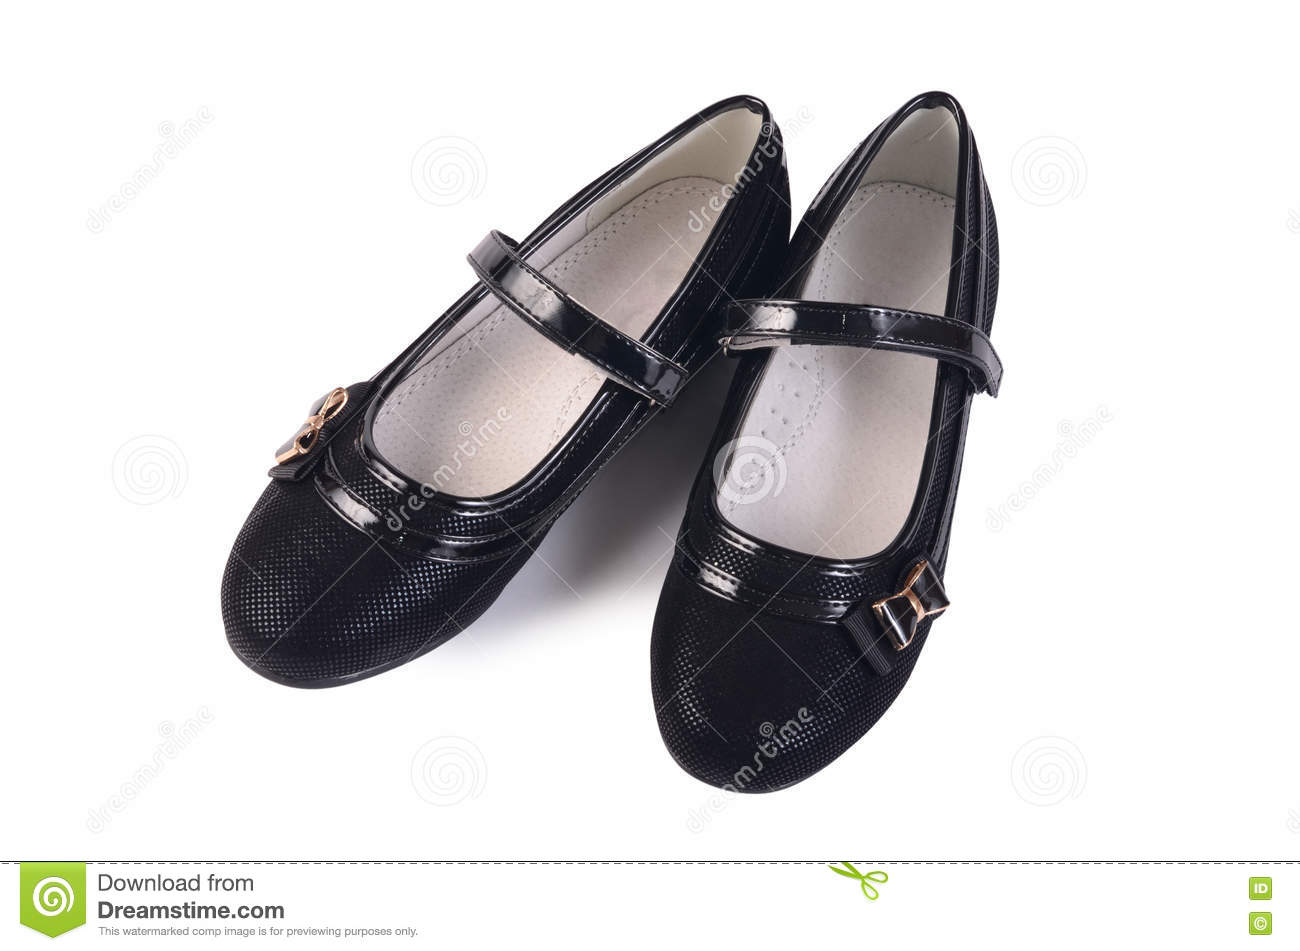 736d38973 Women's Black Shoes Isolated On White Stock Photo - Image of ...